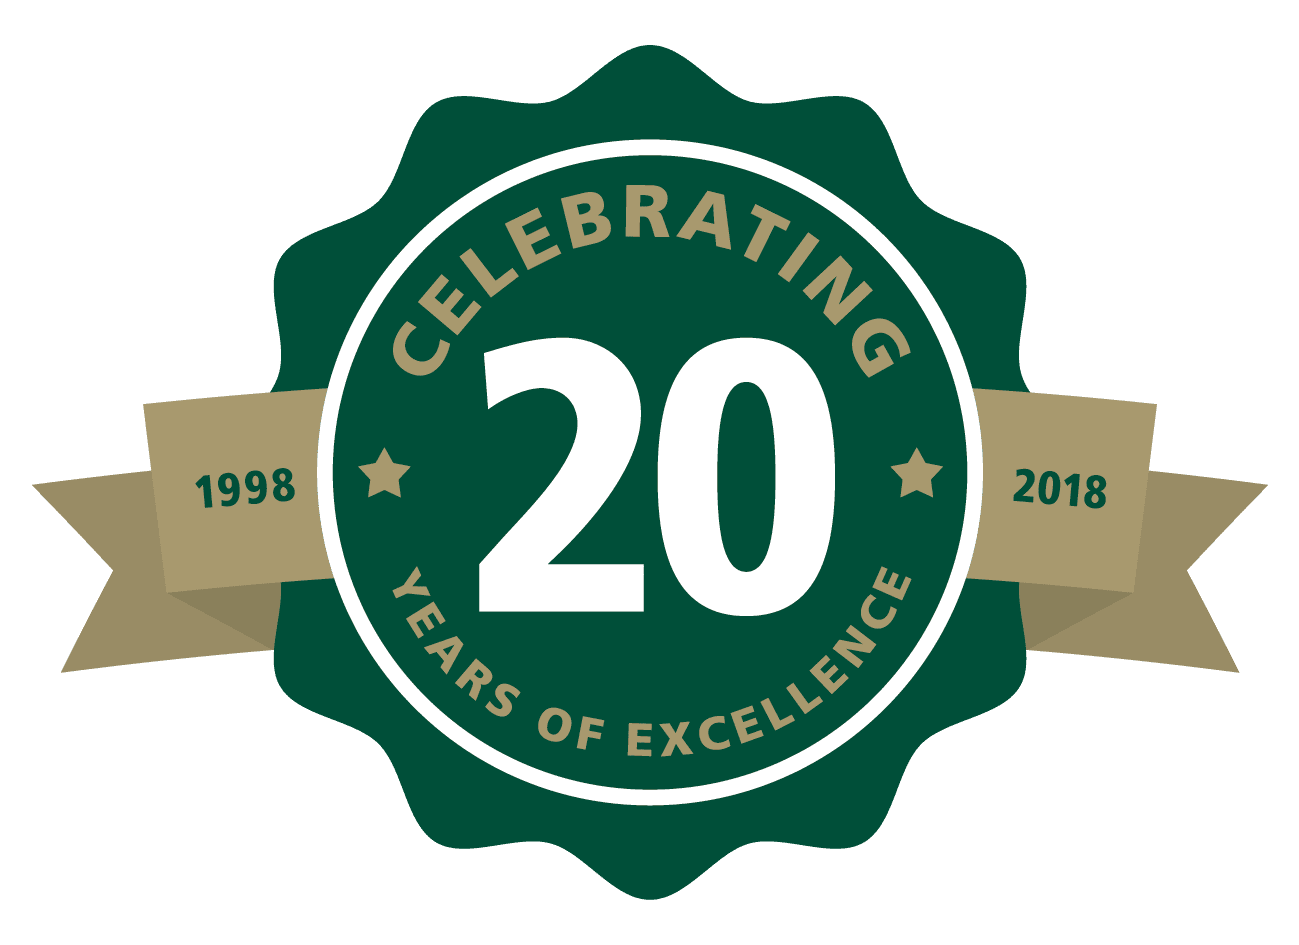 Celebrating 20 Years of Excellence